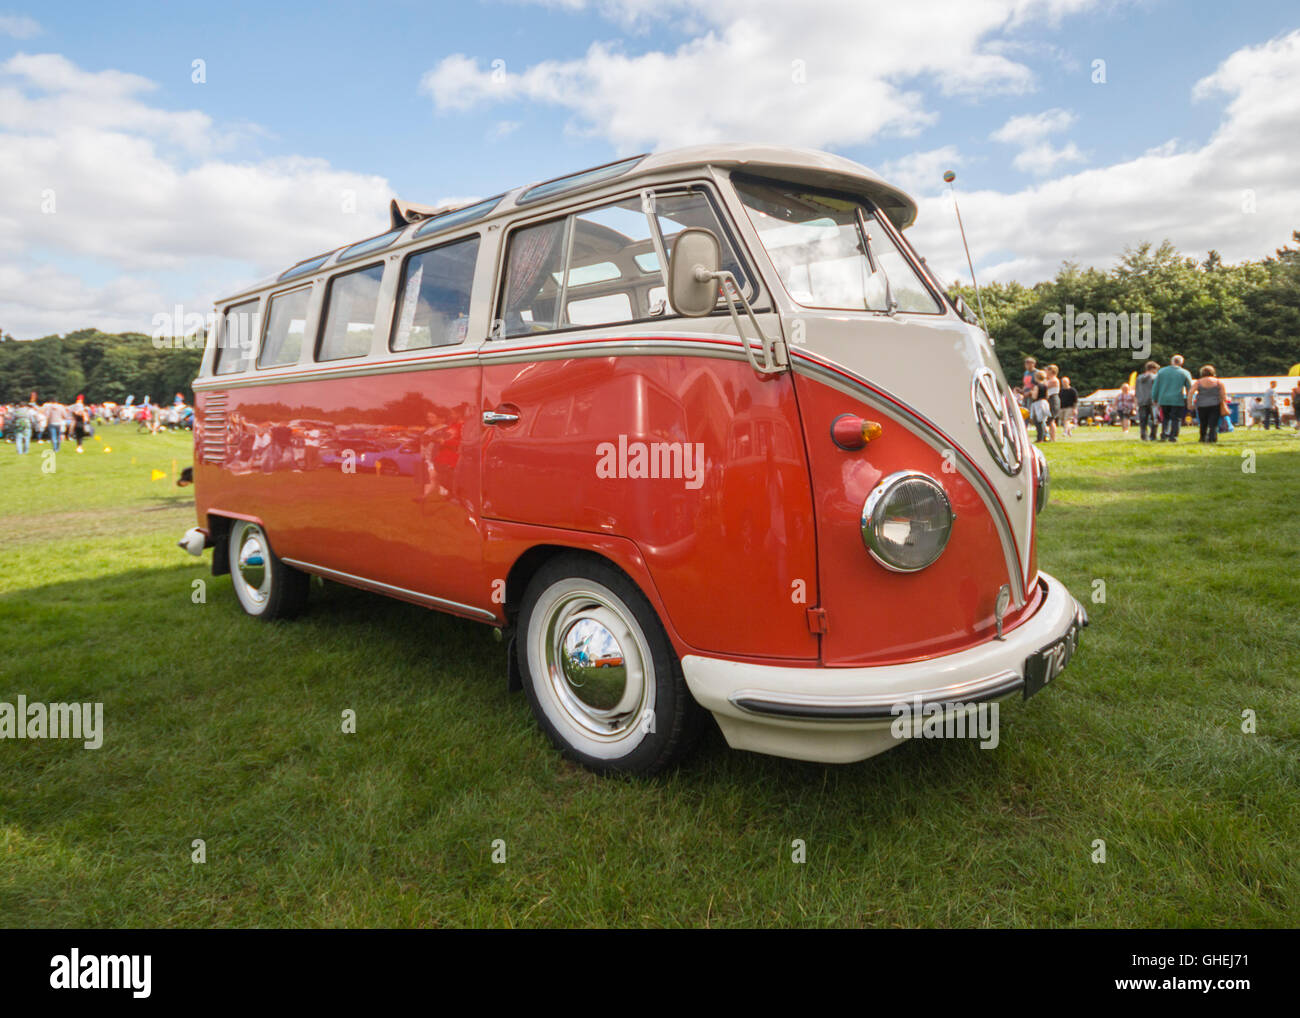 Front View Of Classic Vw Camper Van Stock Photo Alamy